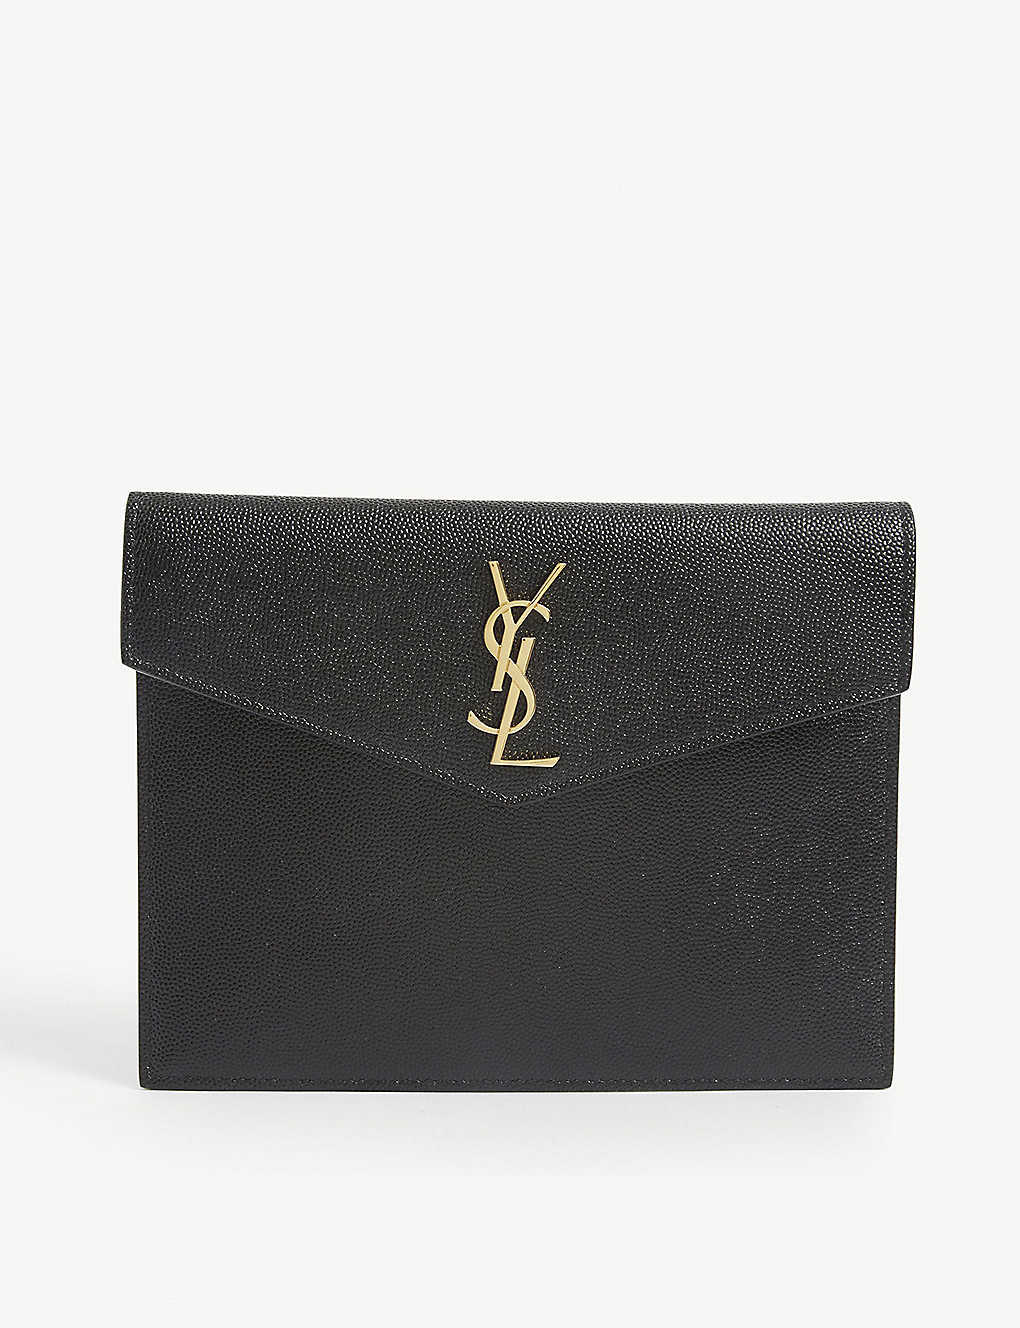 SAINT LAURENT: Uptown Baby monogram leather envelope pouch